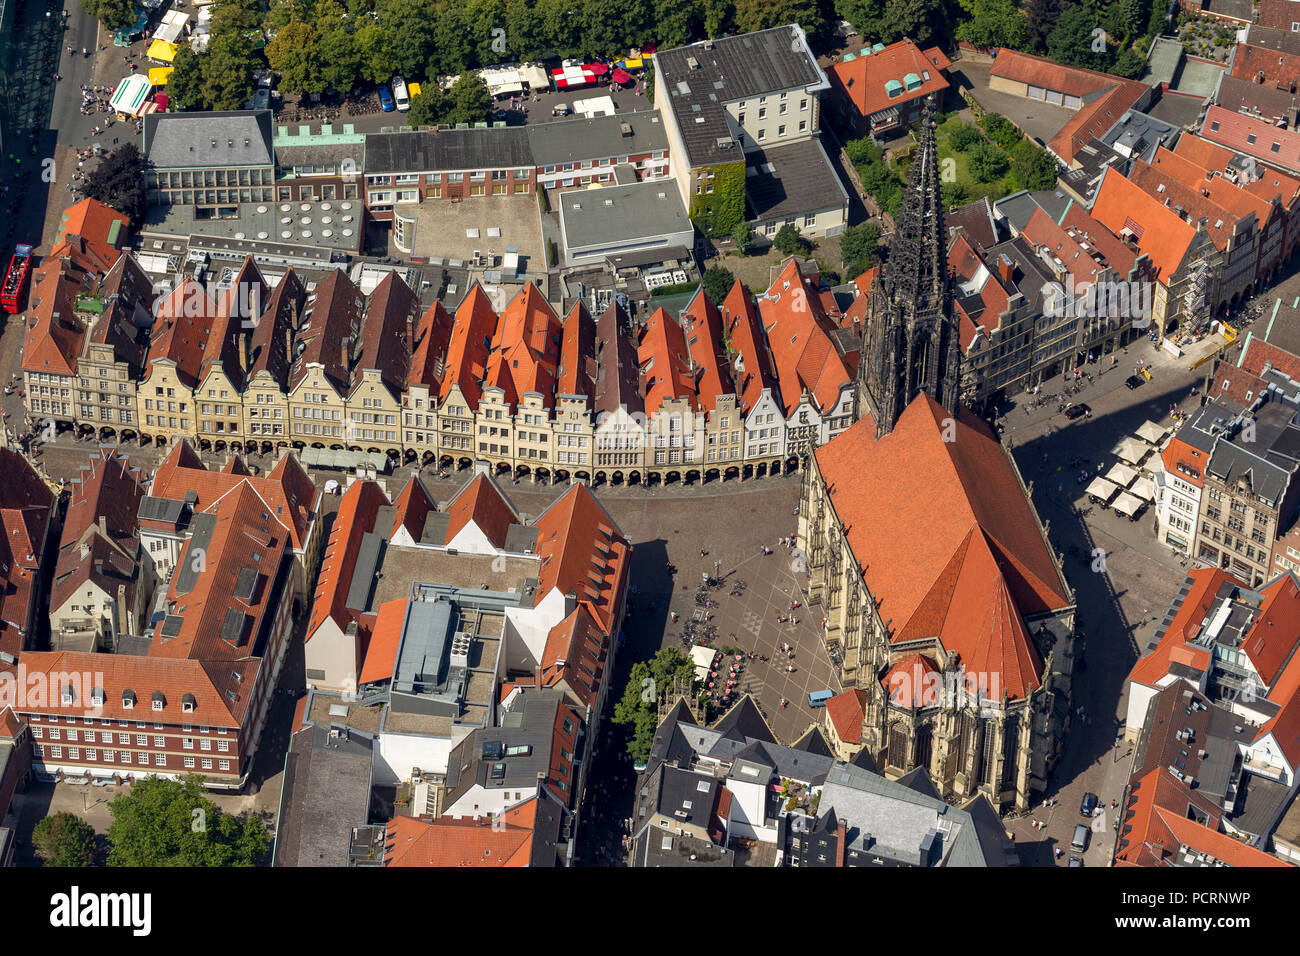 Aerial view, Prinzipalmarkt, historical Kaufmannsstraße gable houses, continuous arcades, Münster, Münsterland, North Rhine-Westphalia, Germany, Europe - Stock Image